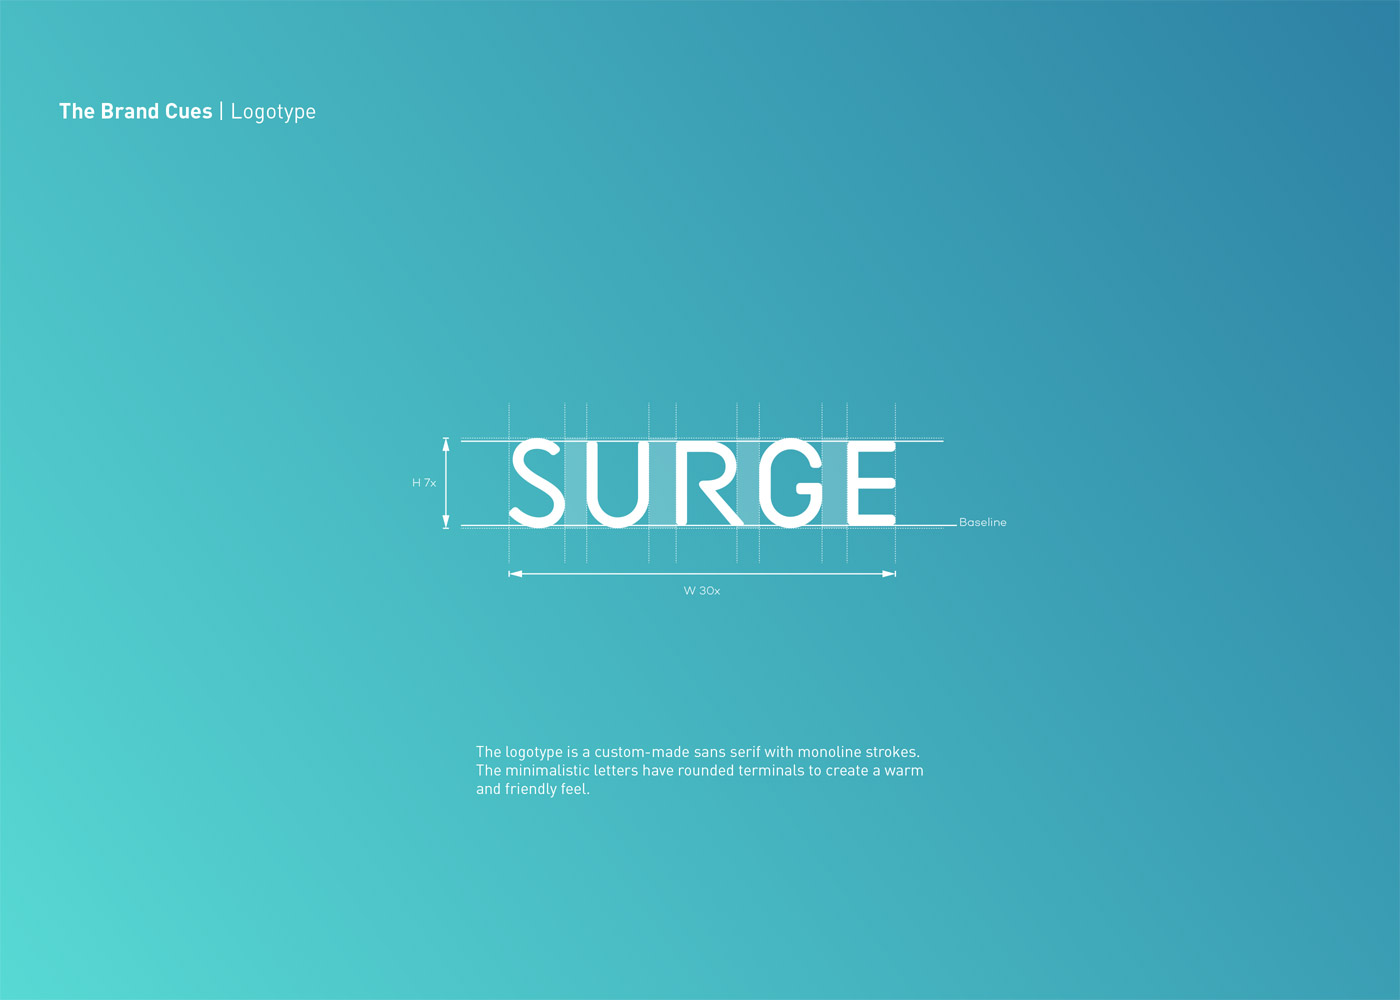 SURGE logo design and branding by Maria Grønlund